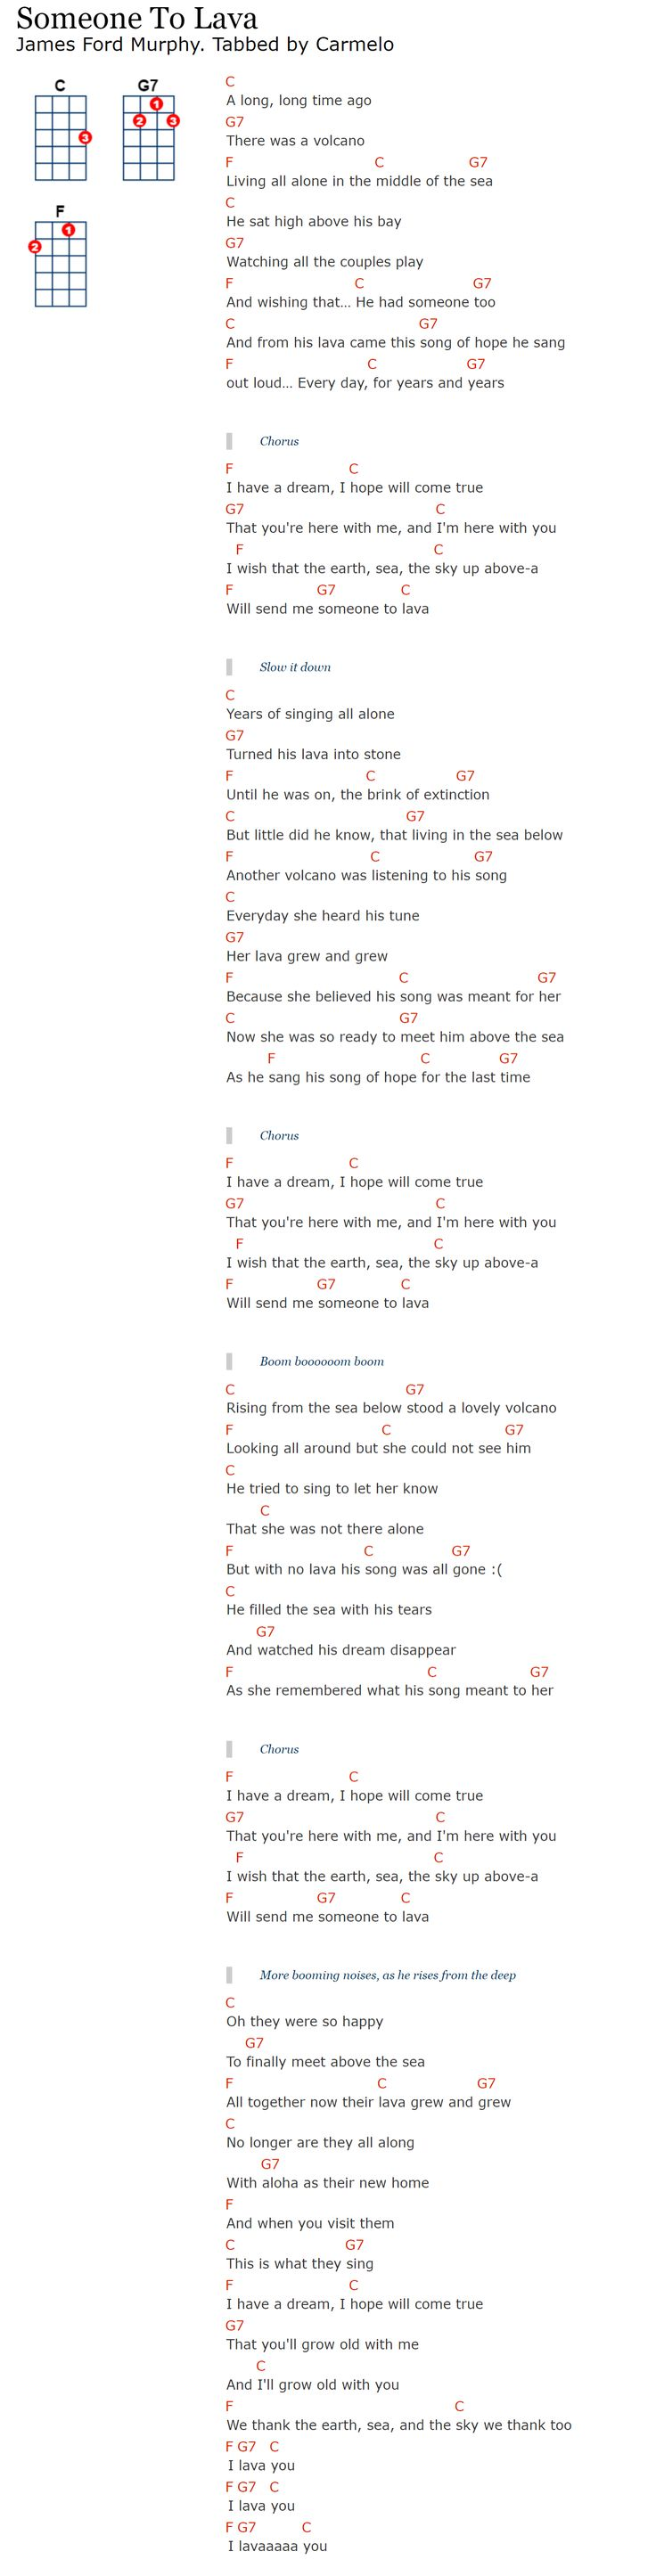 Grow Old With You Chords Guitar Choice Image Basic Guitar Chords